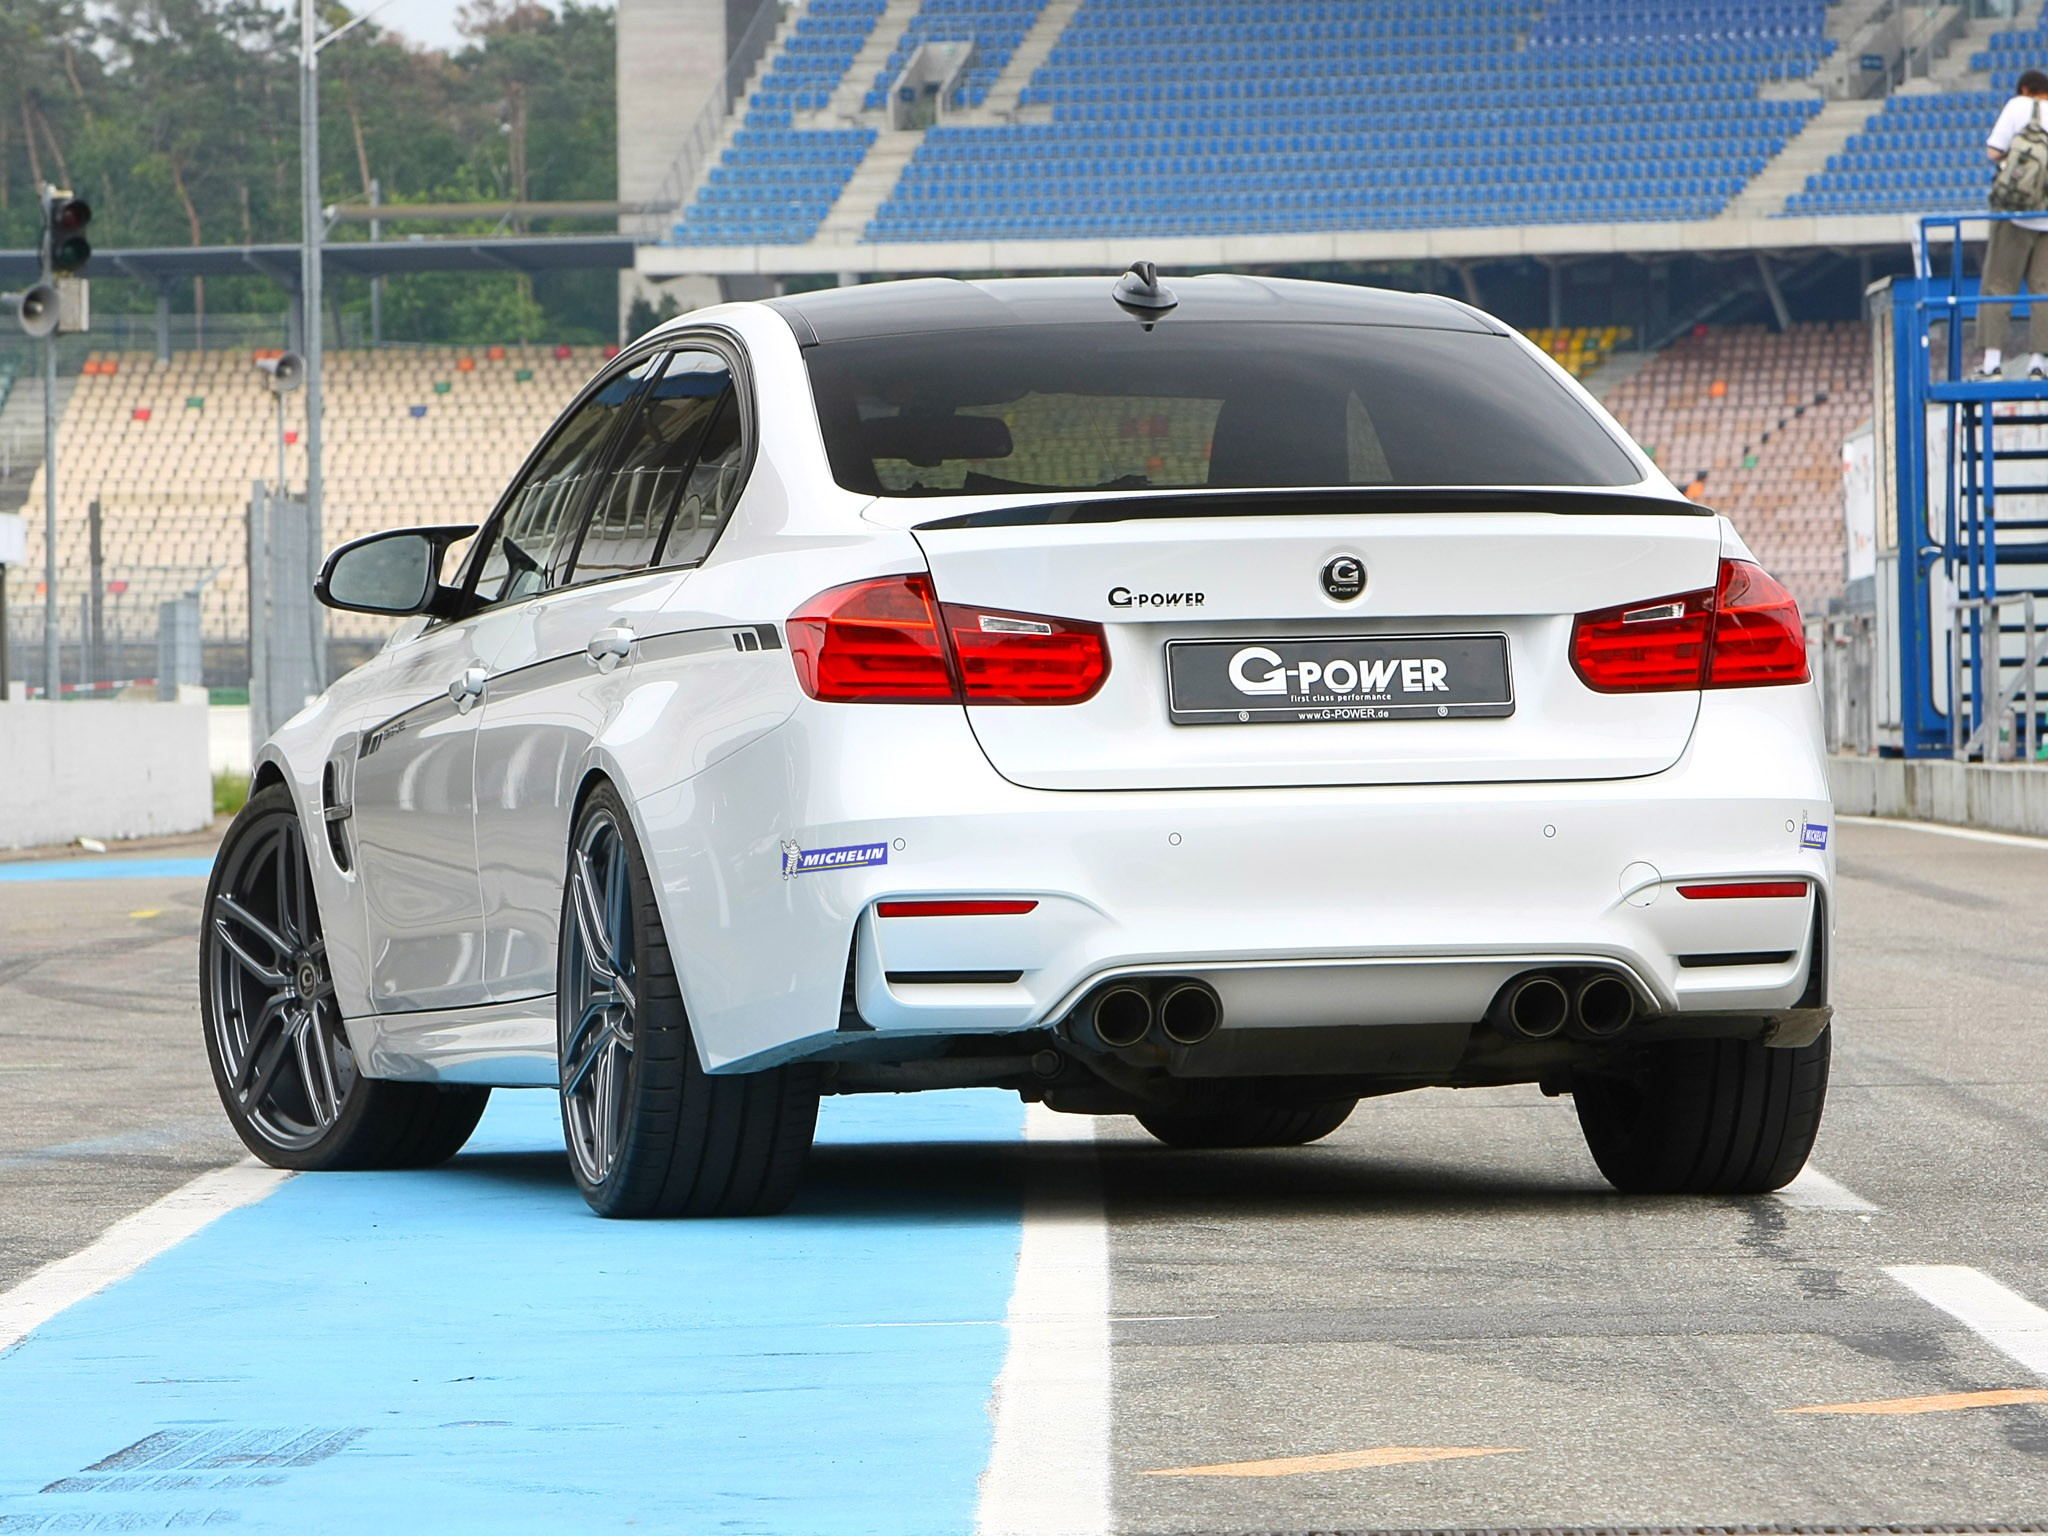 2015 G-power - Bmw M3 F30